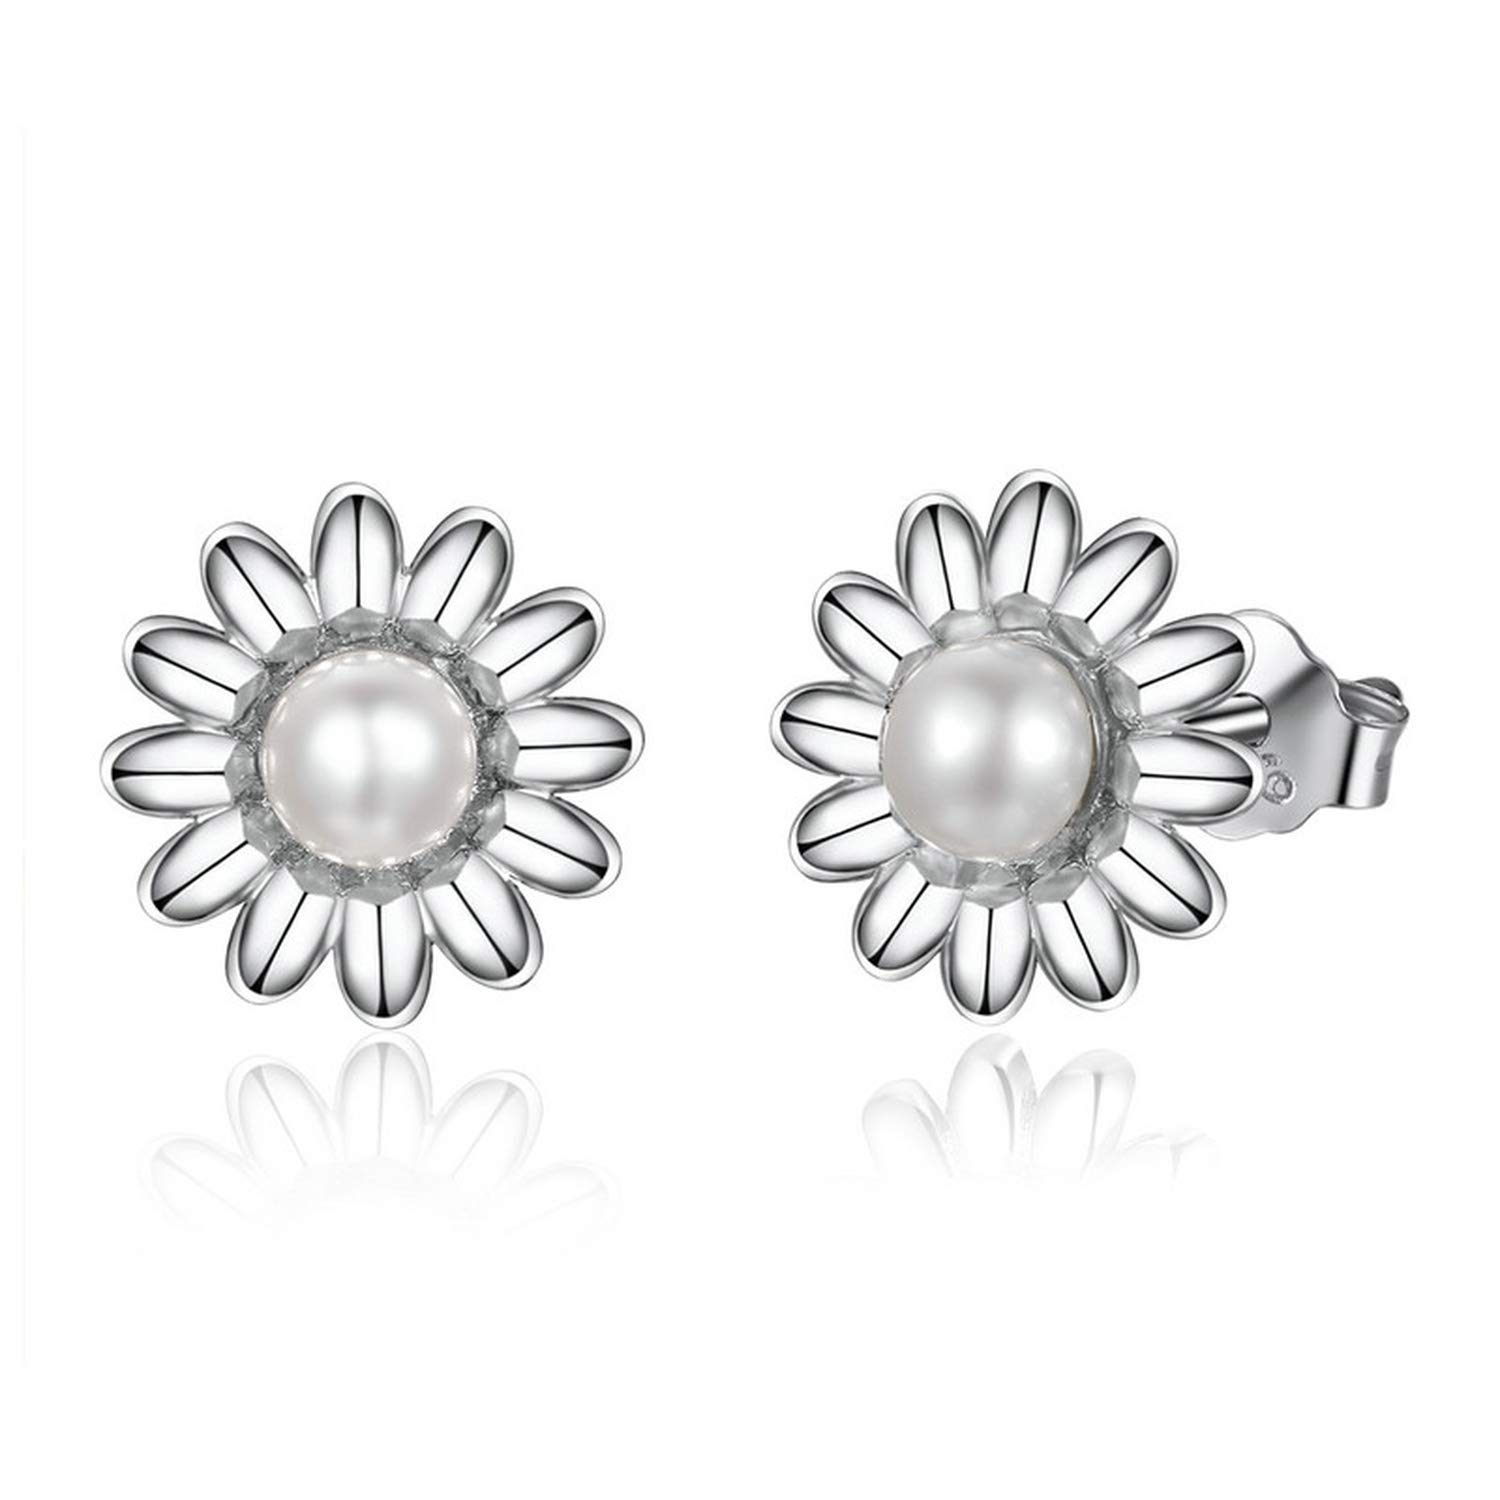 Vintage Genuine 925 Sterling Silver Round Shape Pearl Stud Earrings For Women Wedding Engagement Fine Jewelry Gift